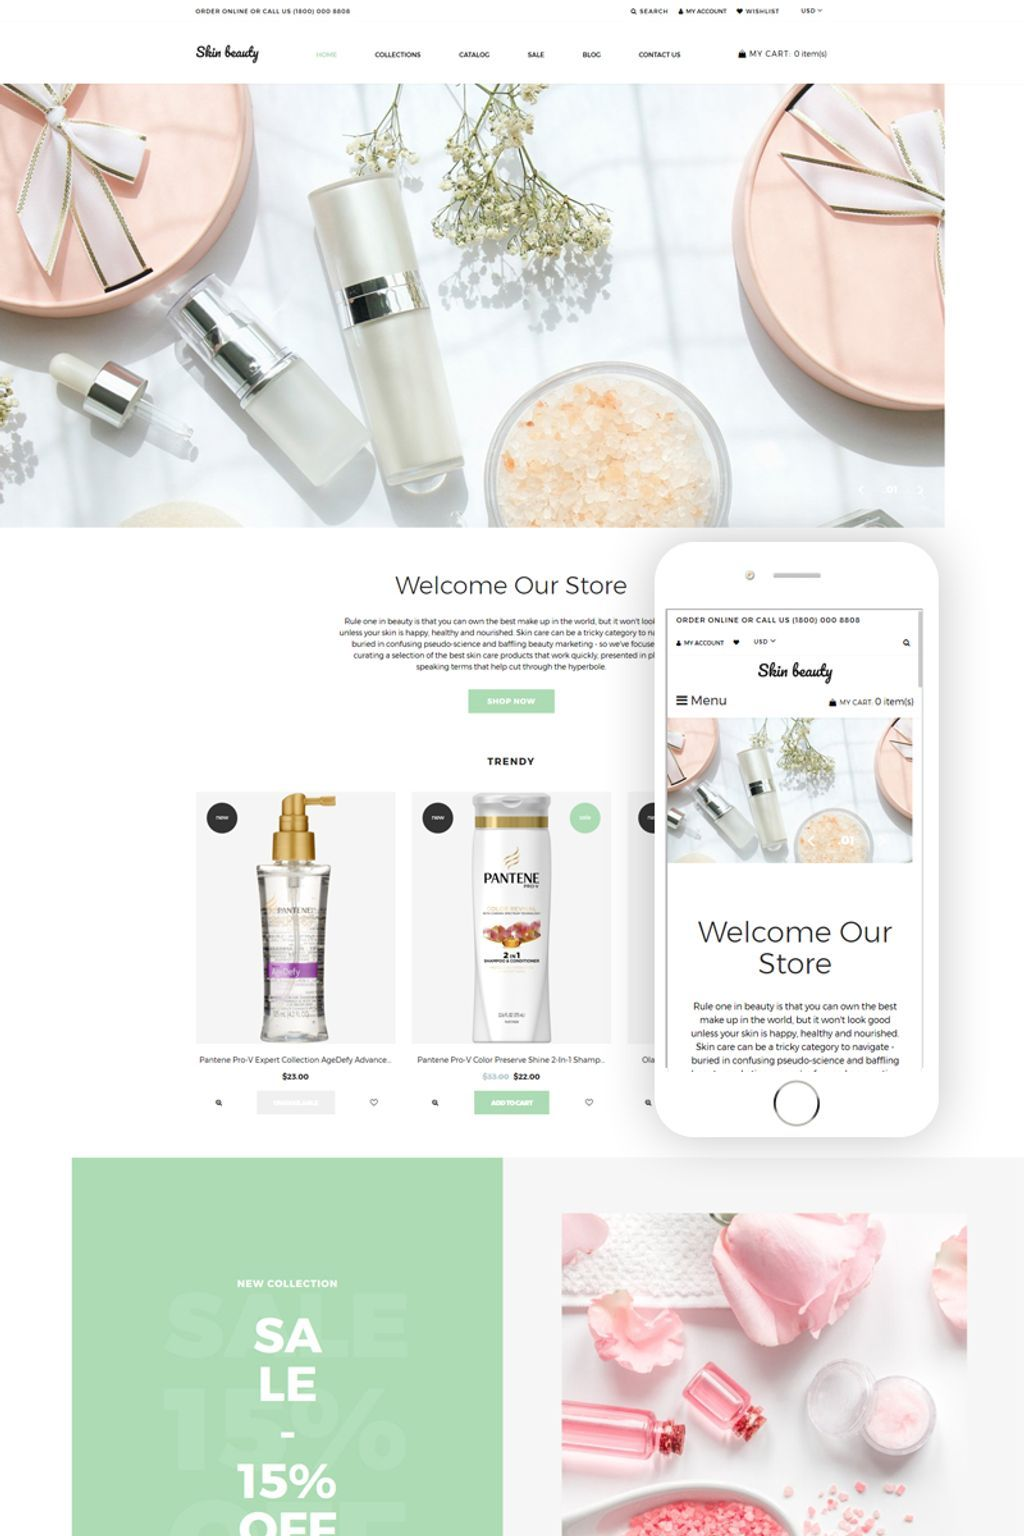 Skin beauty Cosmetics Store Clean Shopify Theme 77630